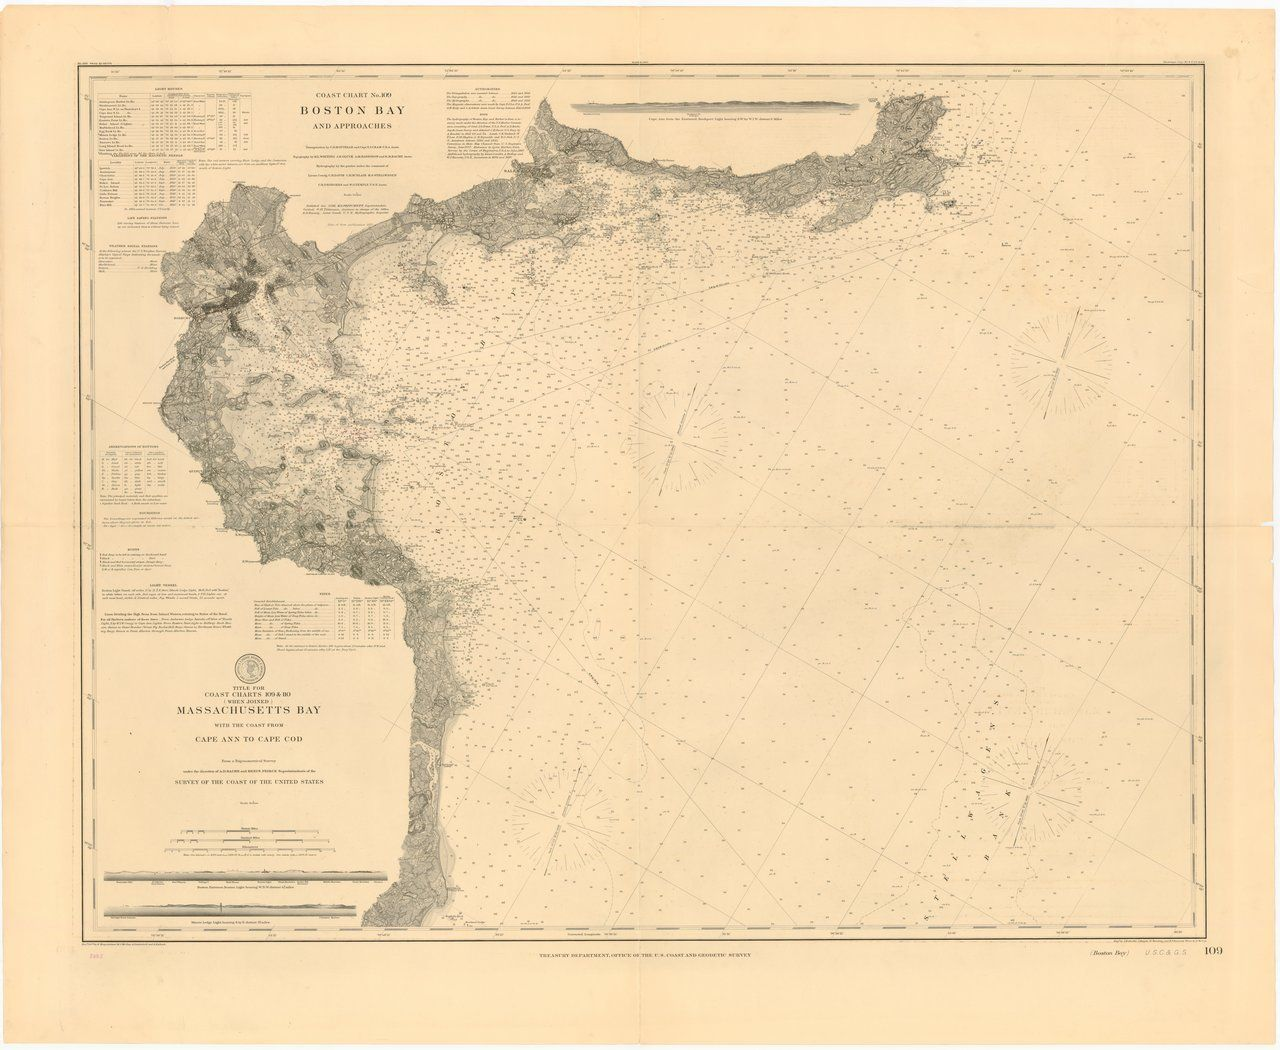 18 x 24 inch 1898 US old nautical map drawing chart of MASSACHUSETTS